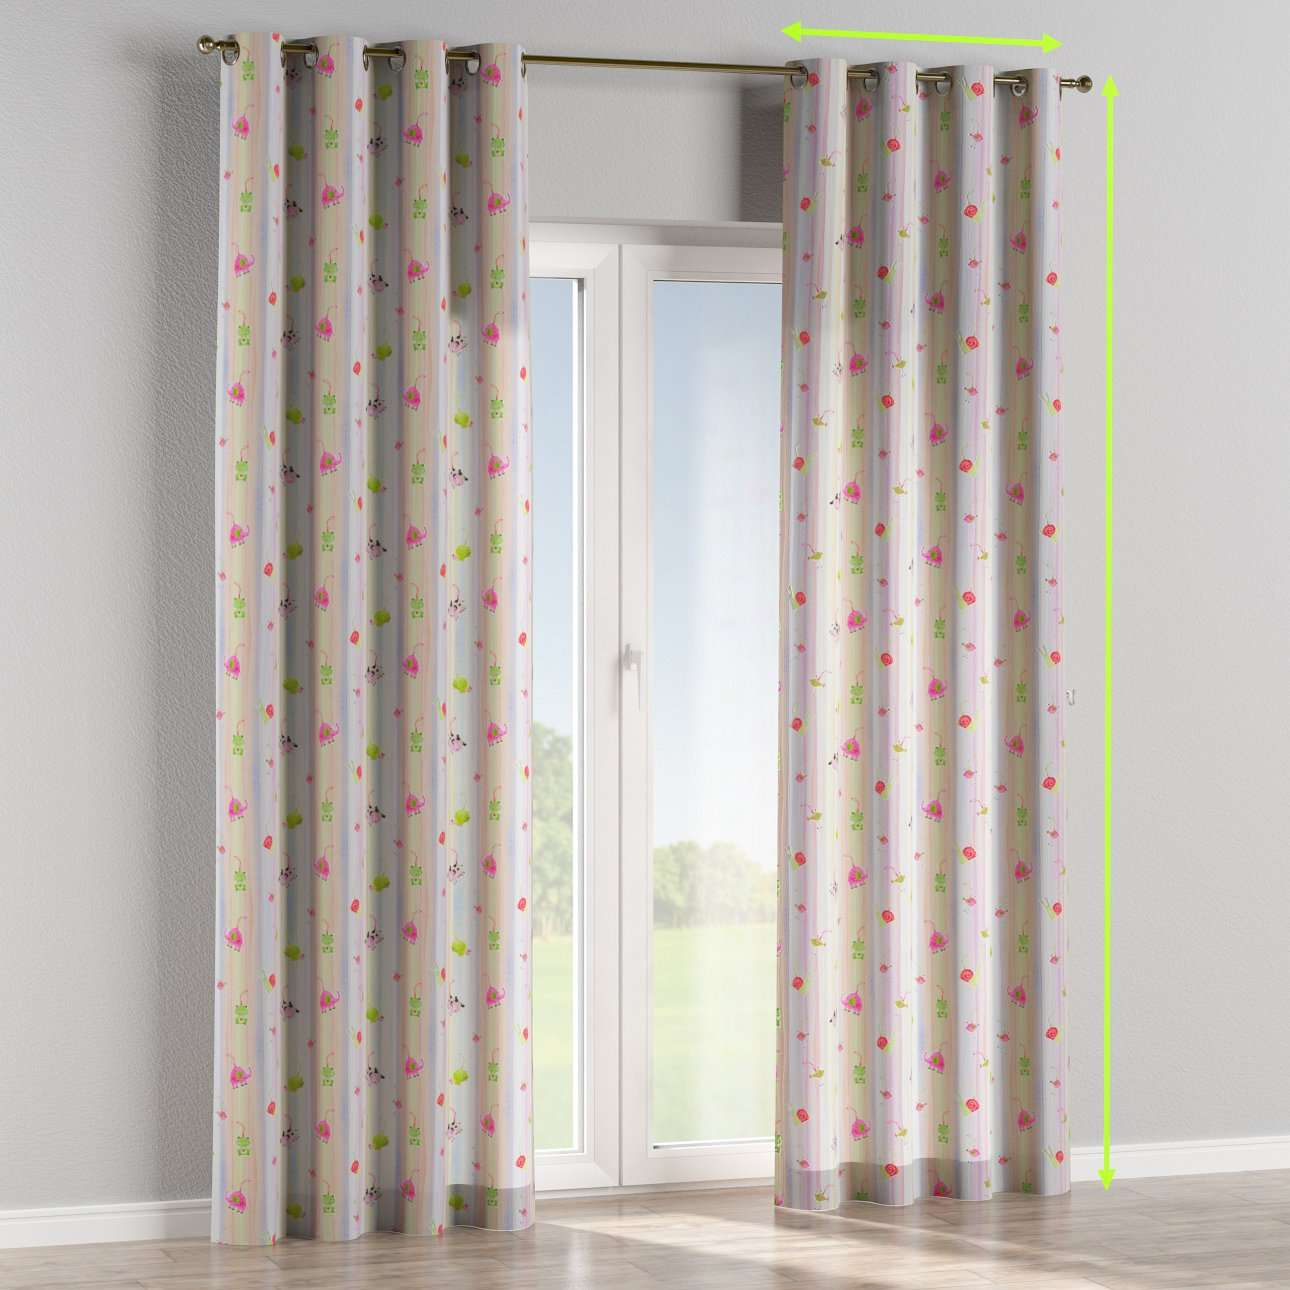 Eyelet lined curtains in collection Apanona, fabric: 151-05